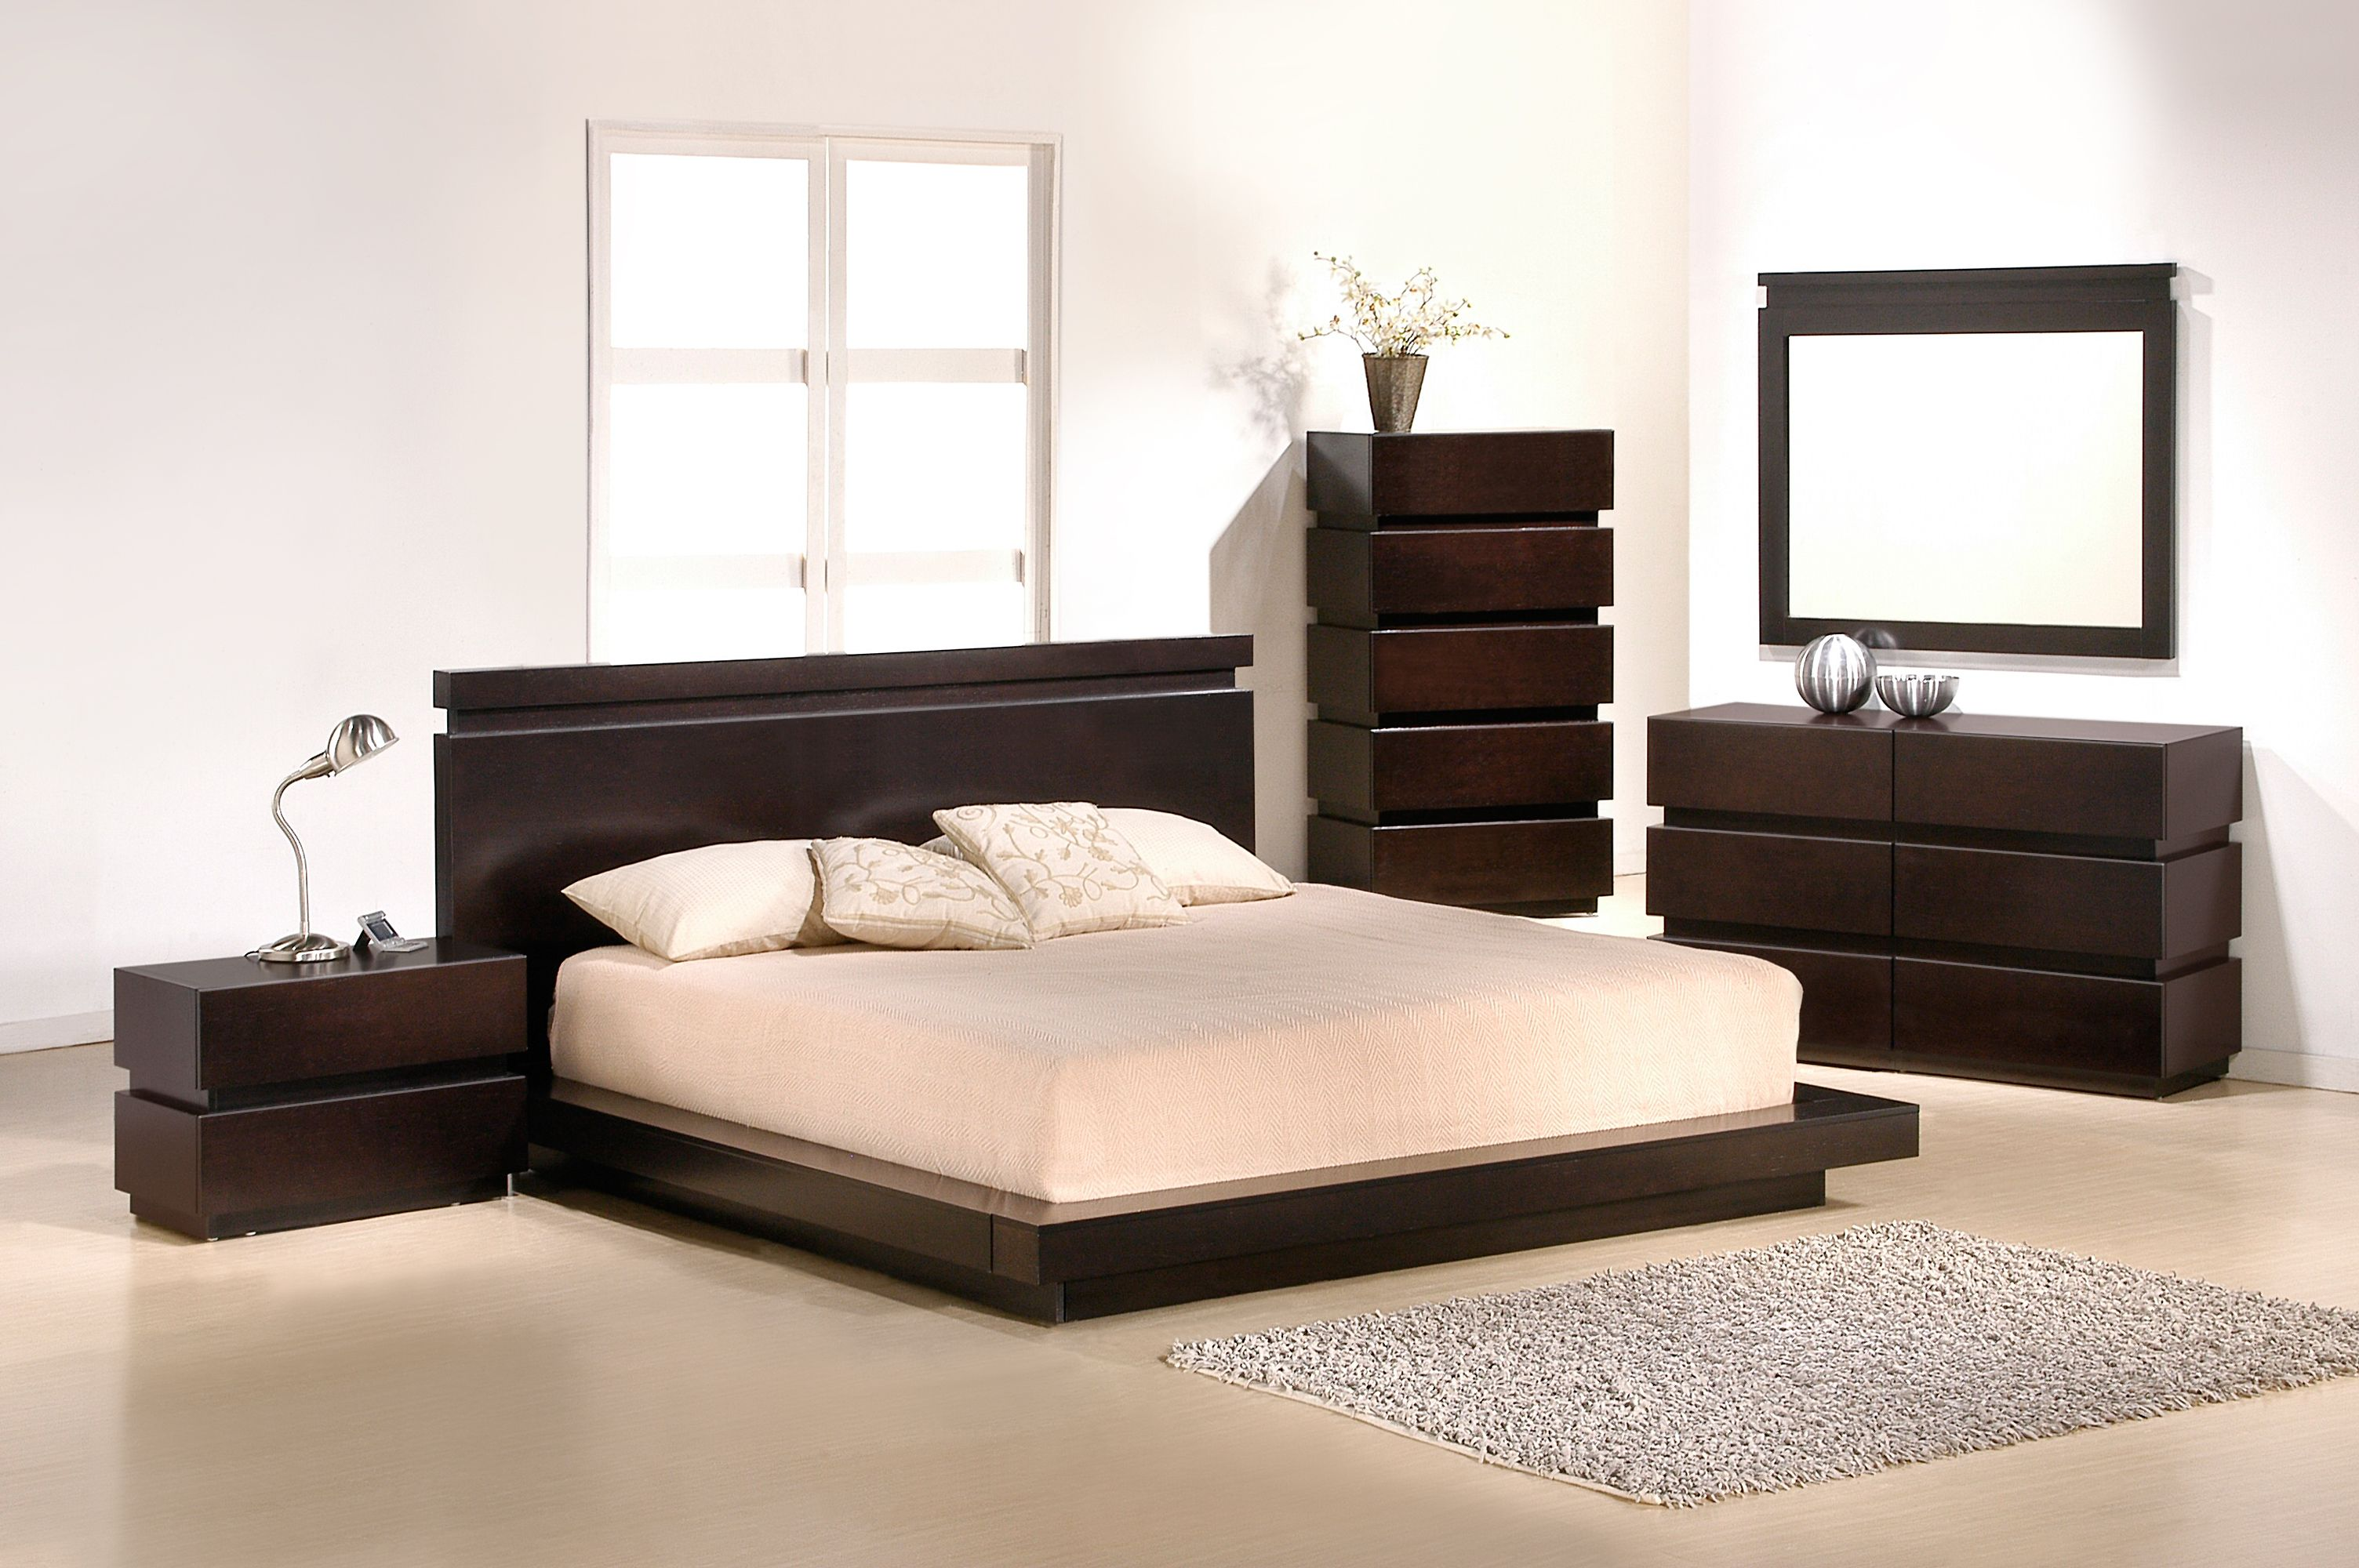 furniplanet - buy knotch (queen size bed) at discount price at